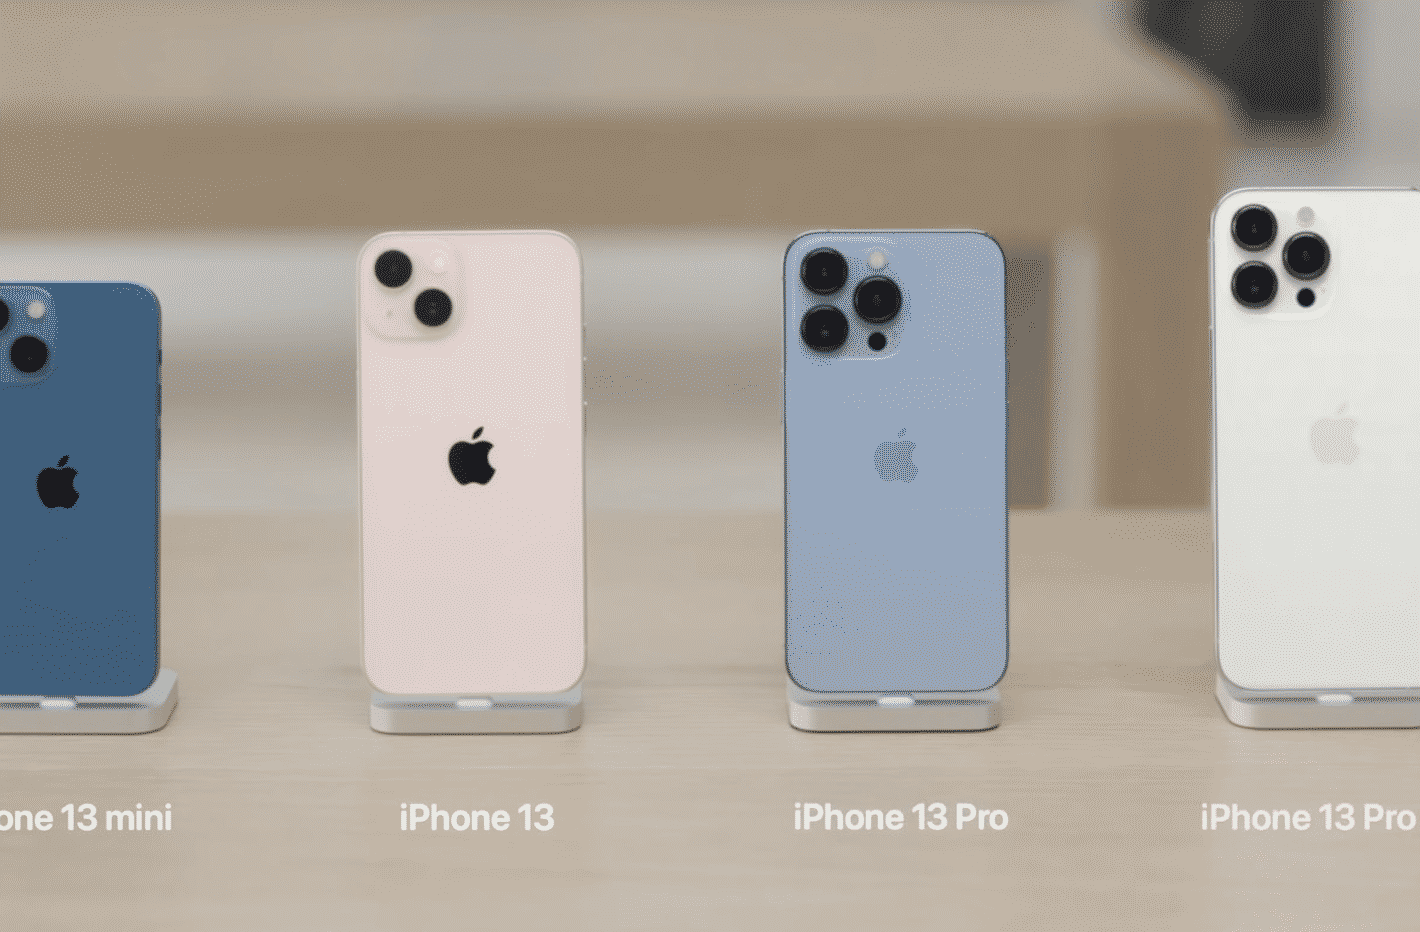 iPhone 13 Pro and iPhone 13